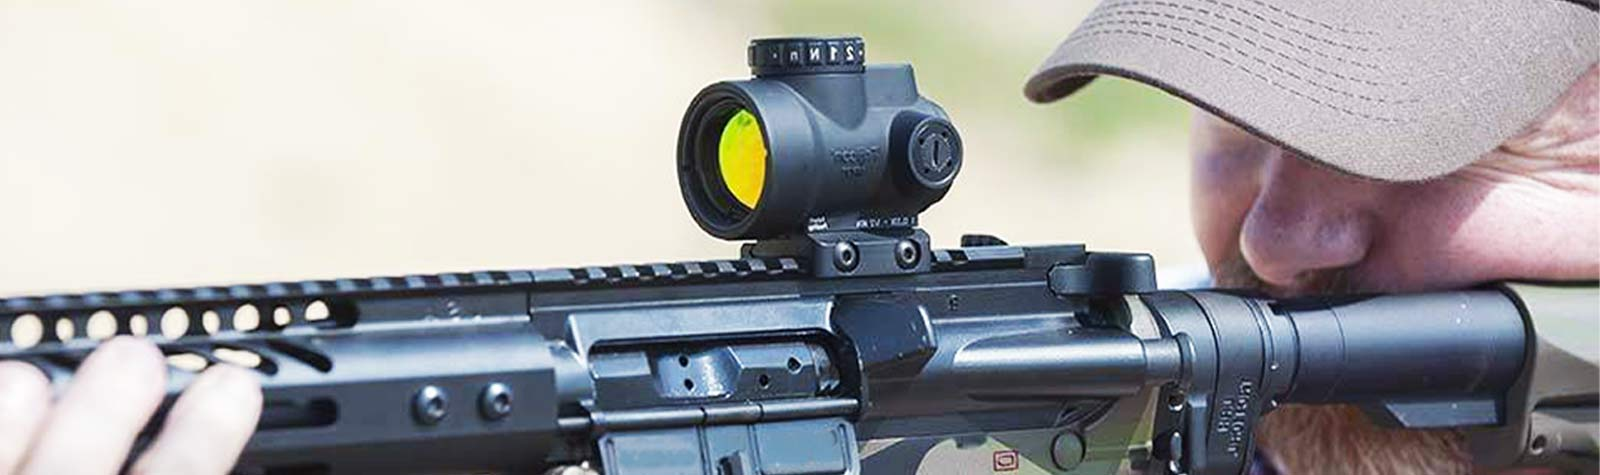 How To Sight In A Rifle Scope – A Simple Guide